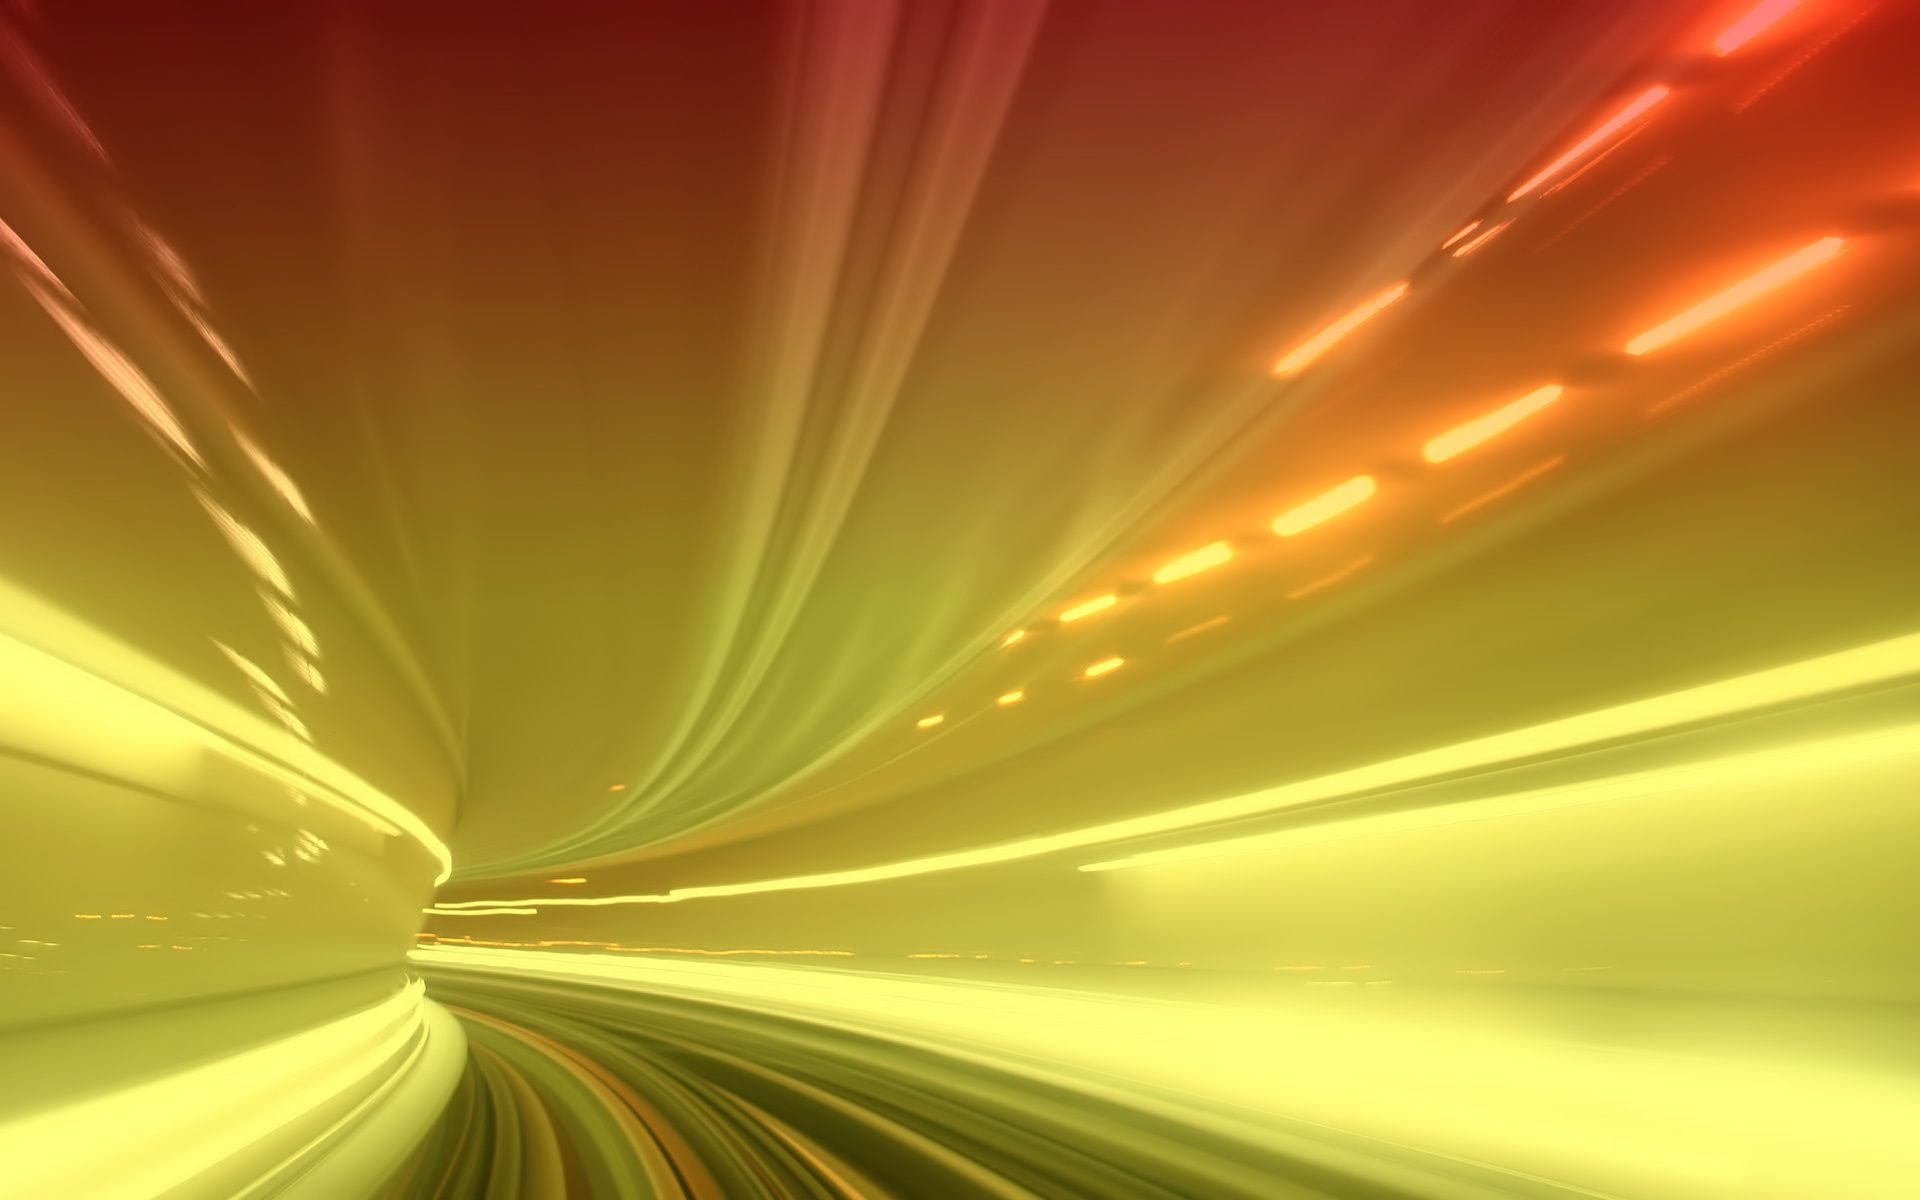 28 excellent hd tunnel wallpapers - hdwallsource